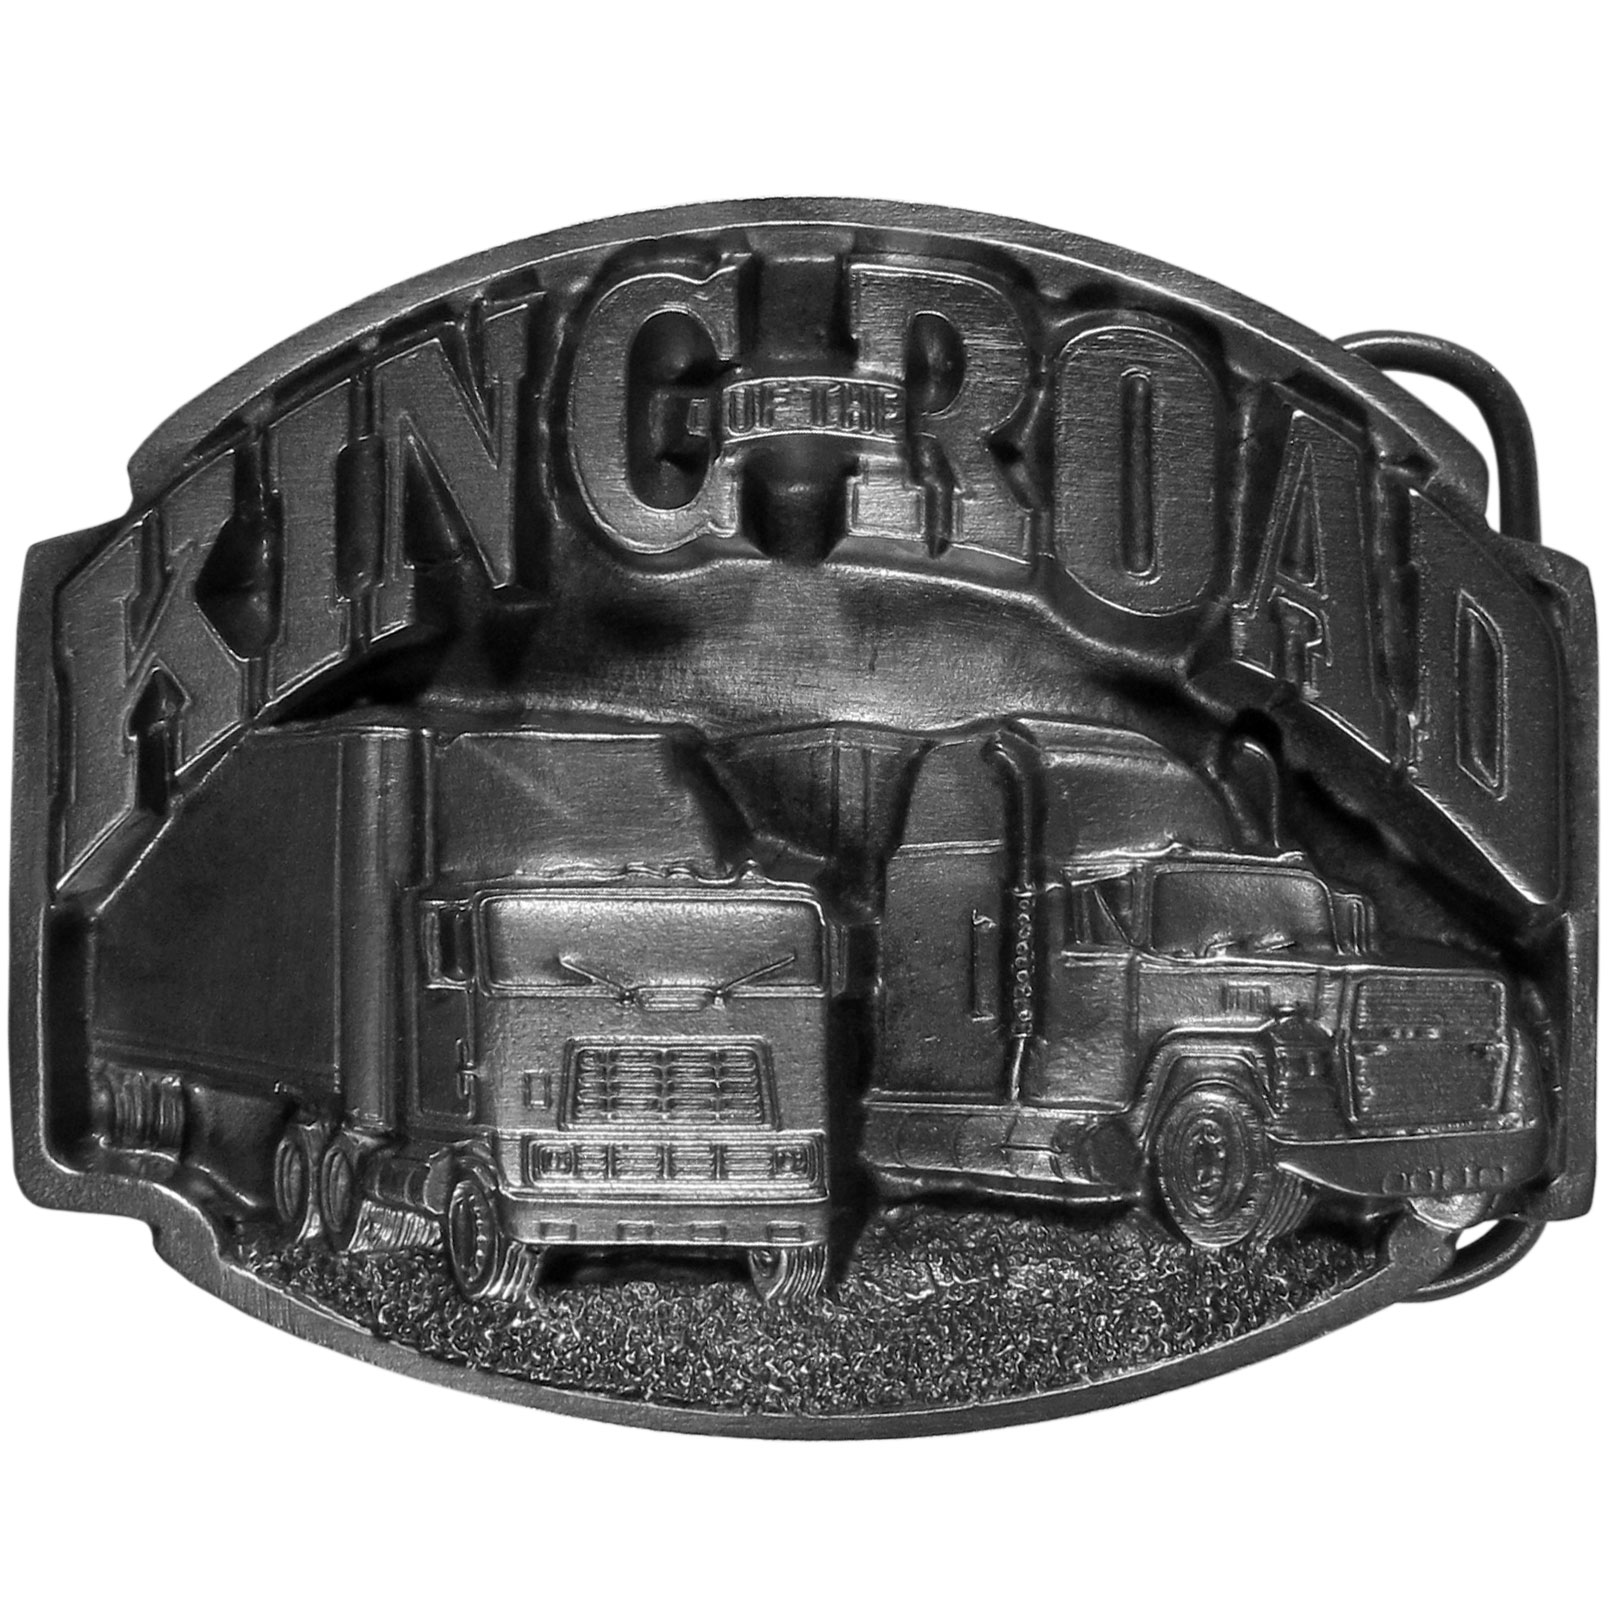 "King of the Road  Antiqued Belt Buckle - ""This belt buckle features two semi-trucks and the words """"King of the Road"""" in bold celebrating the proud American Truck Drivers.  Finely sculpted and intricately designed belt buckle. The bale fits belts up to 2 inches wide."""